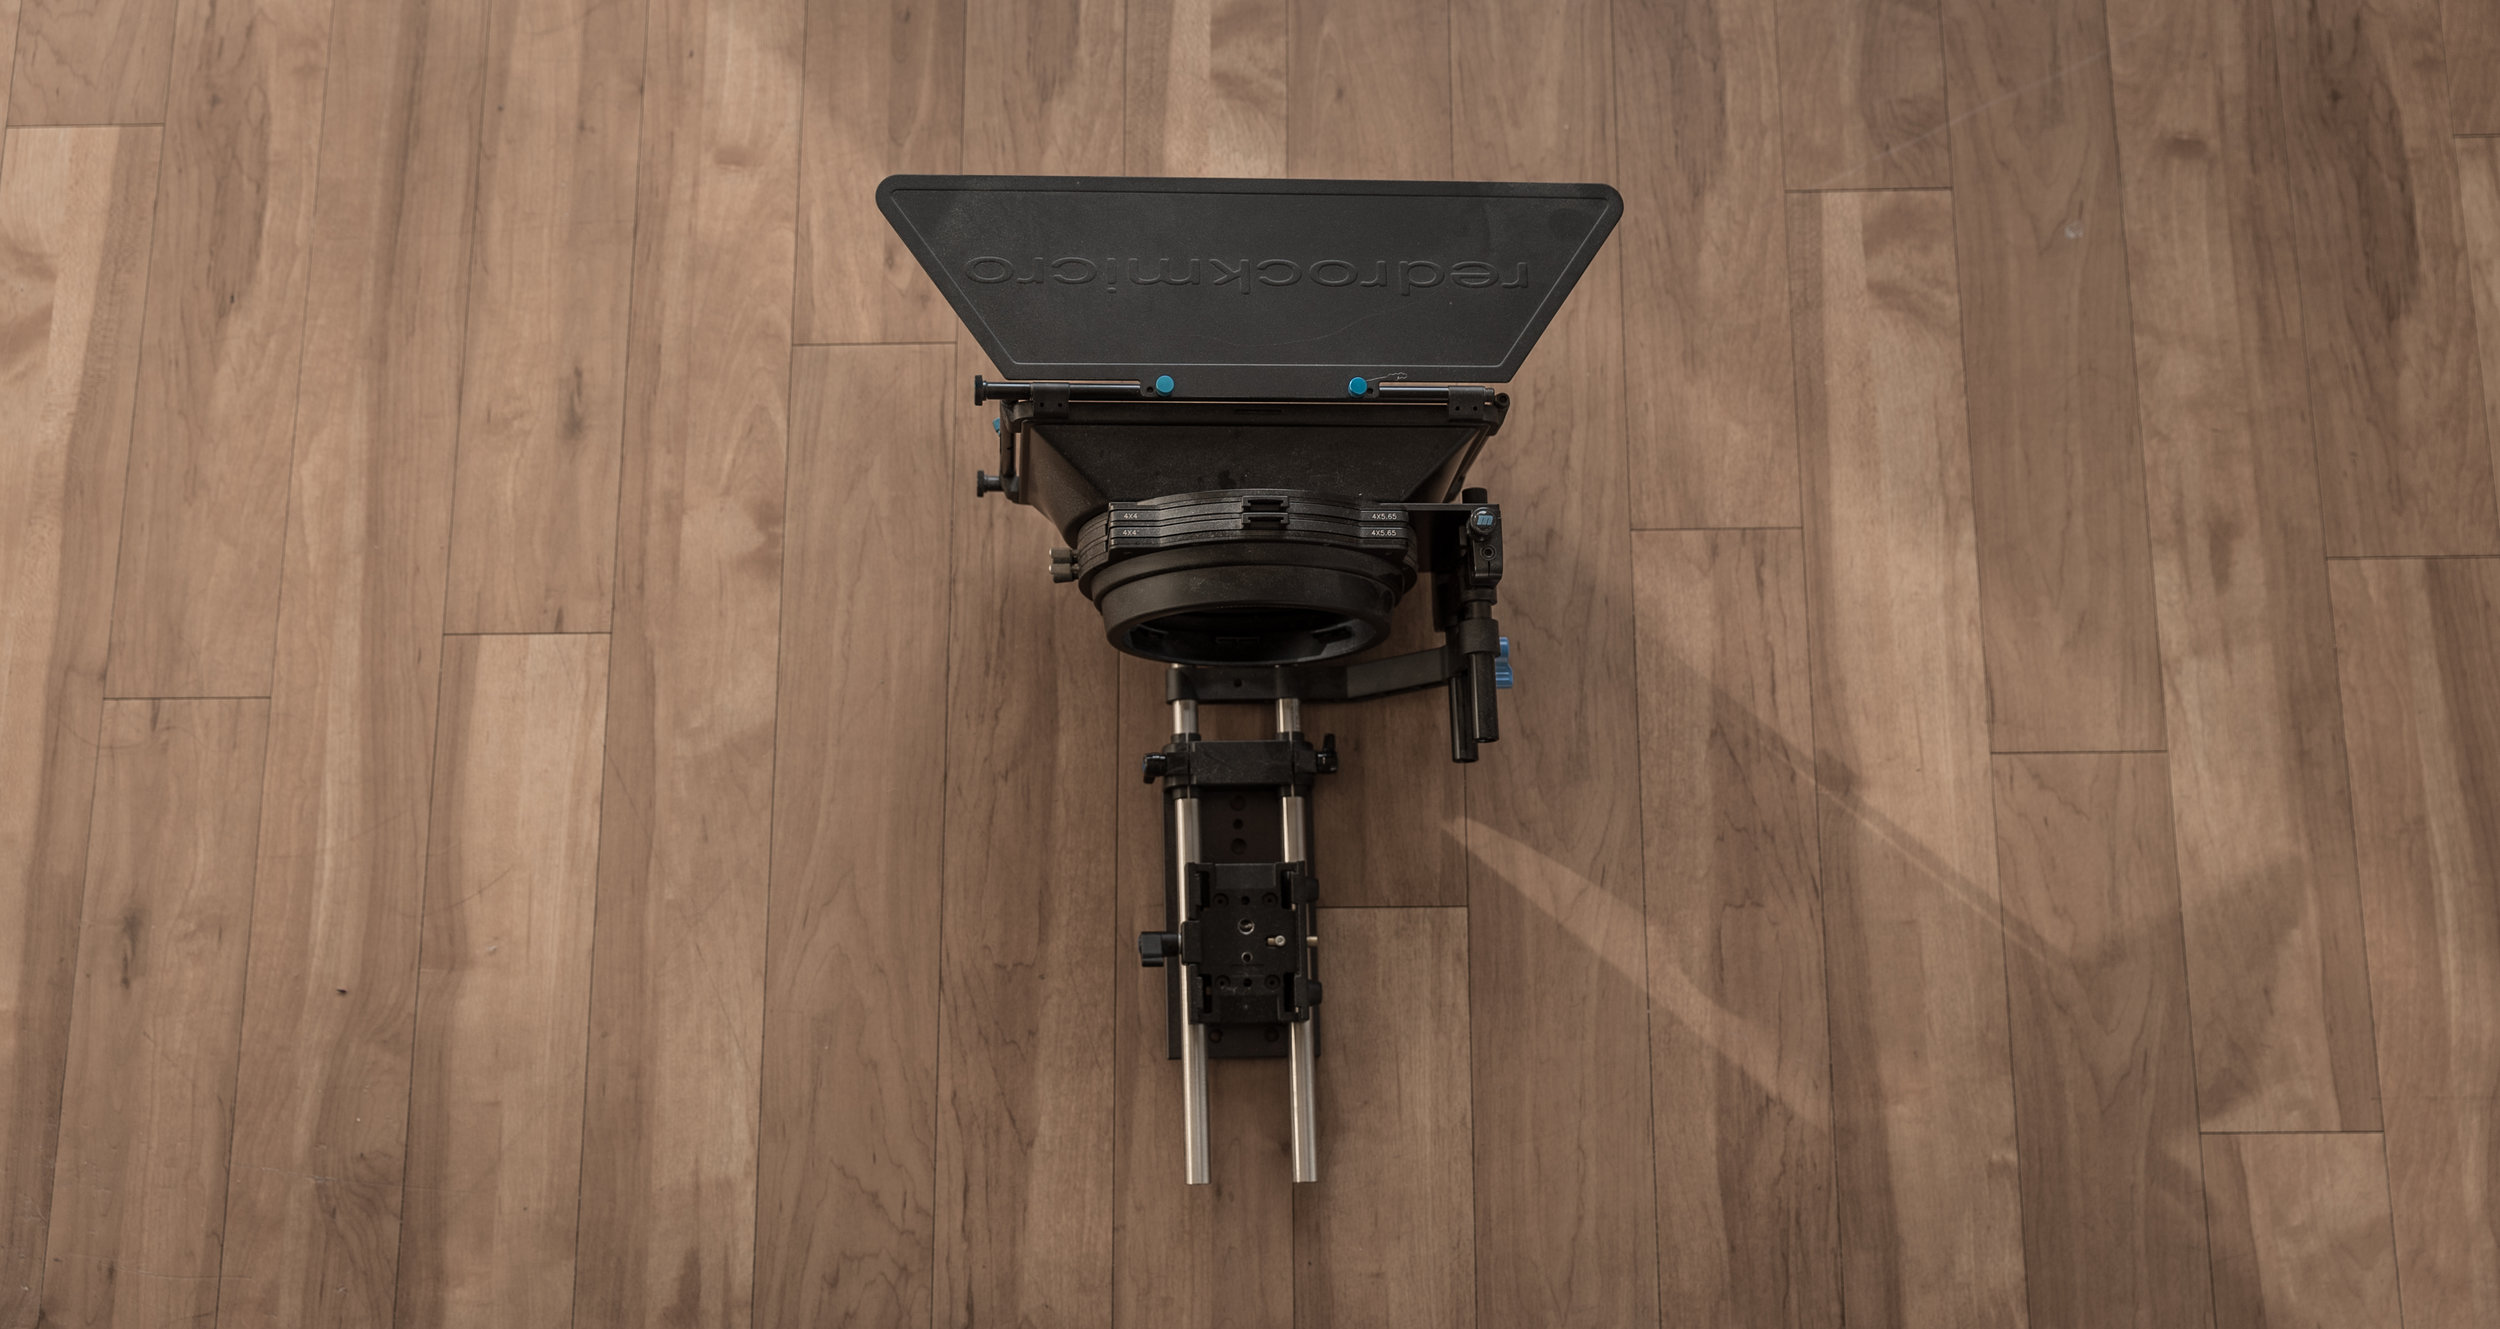 A mattebox I've only used for one shoot 9 years ago.